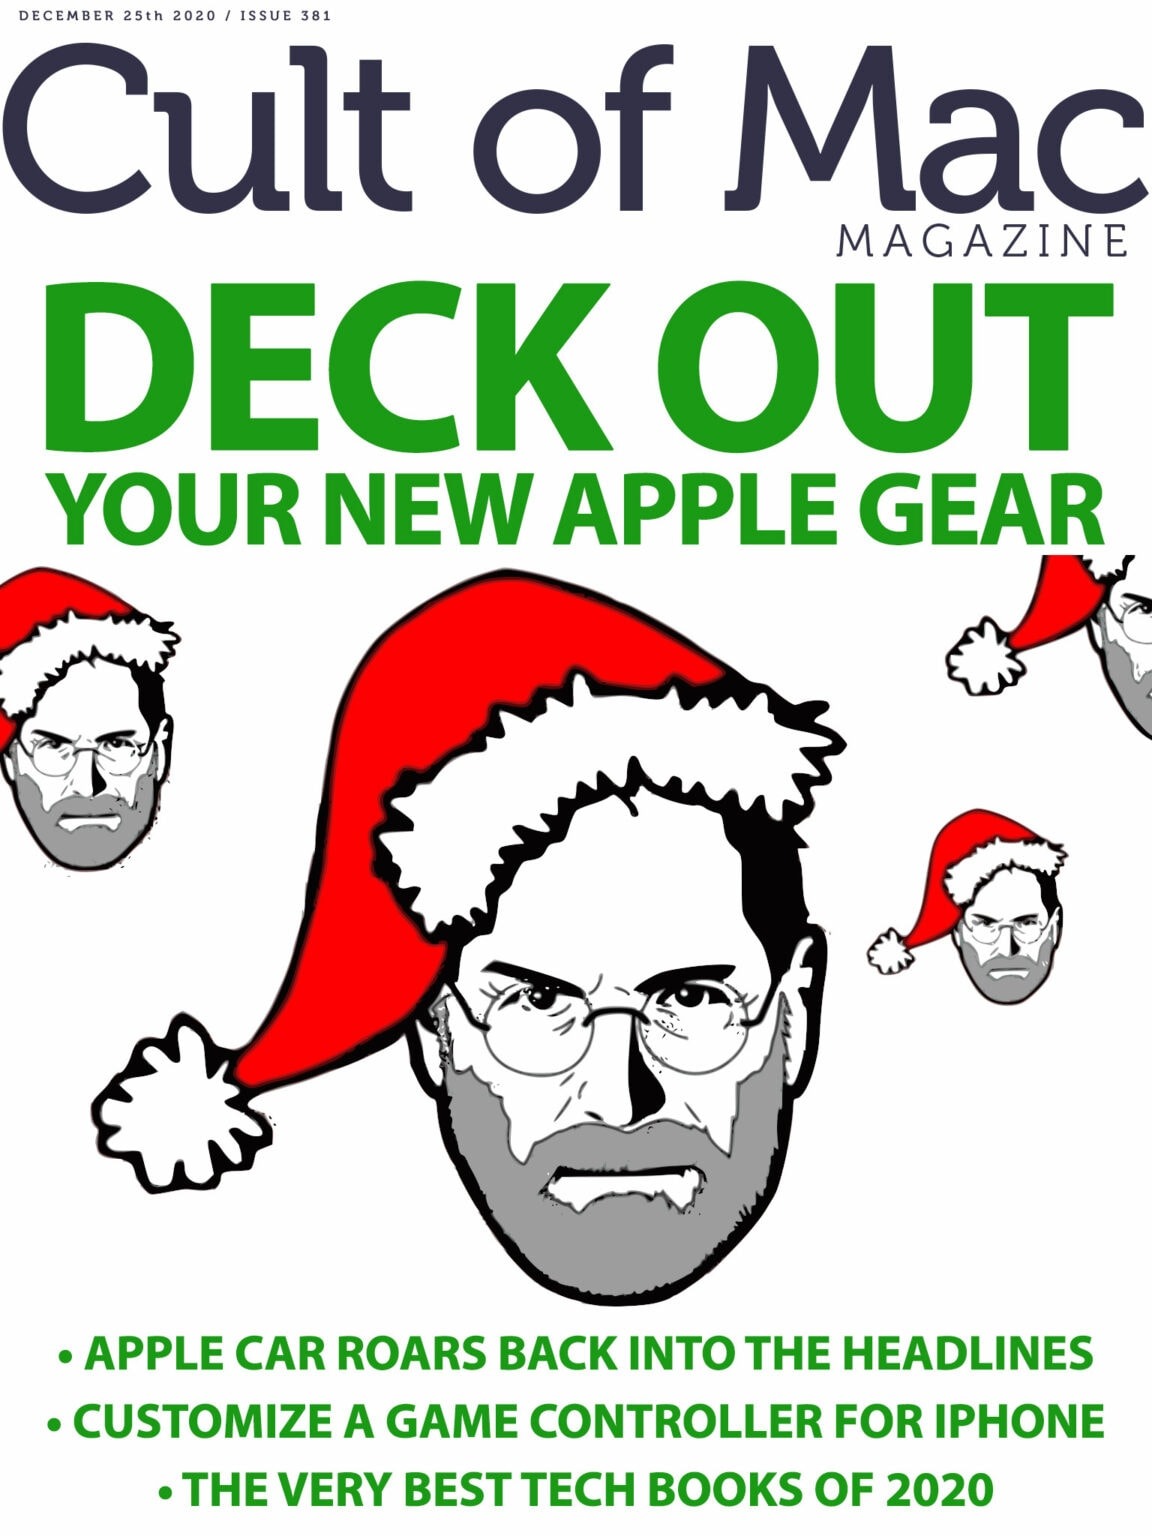 Deck out your new Apple gear.